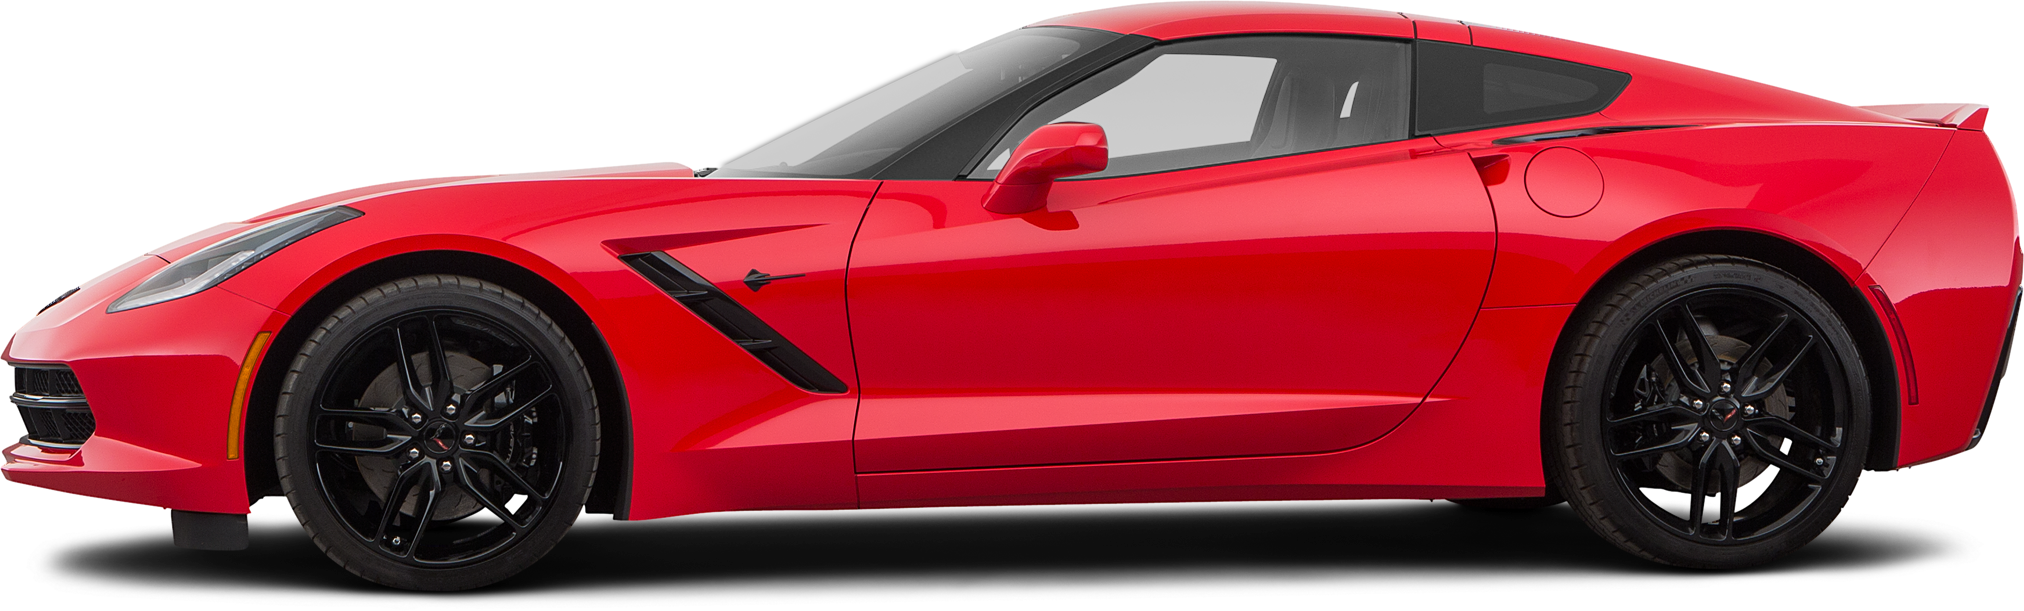 2019 Chevrolet Corvette Coupe Stingray Z51